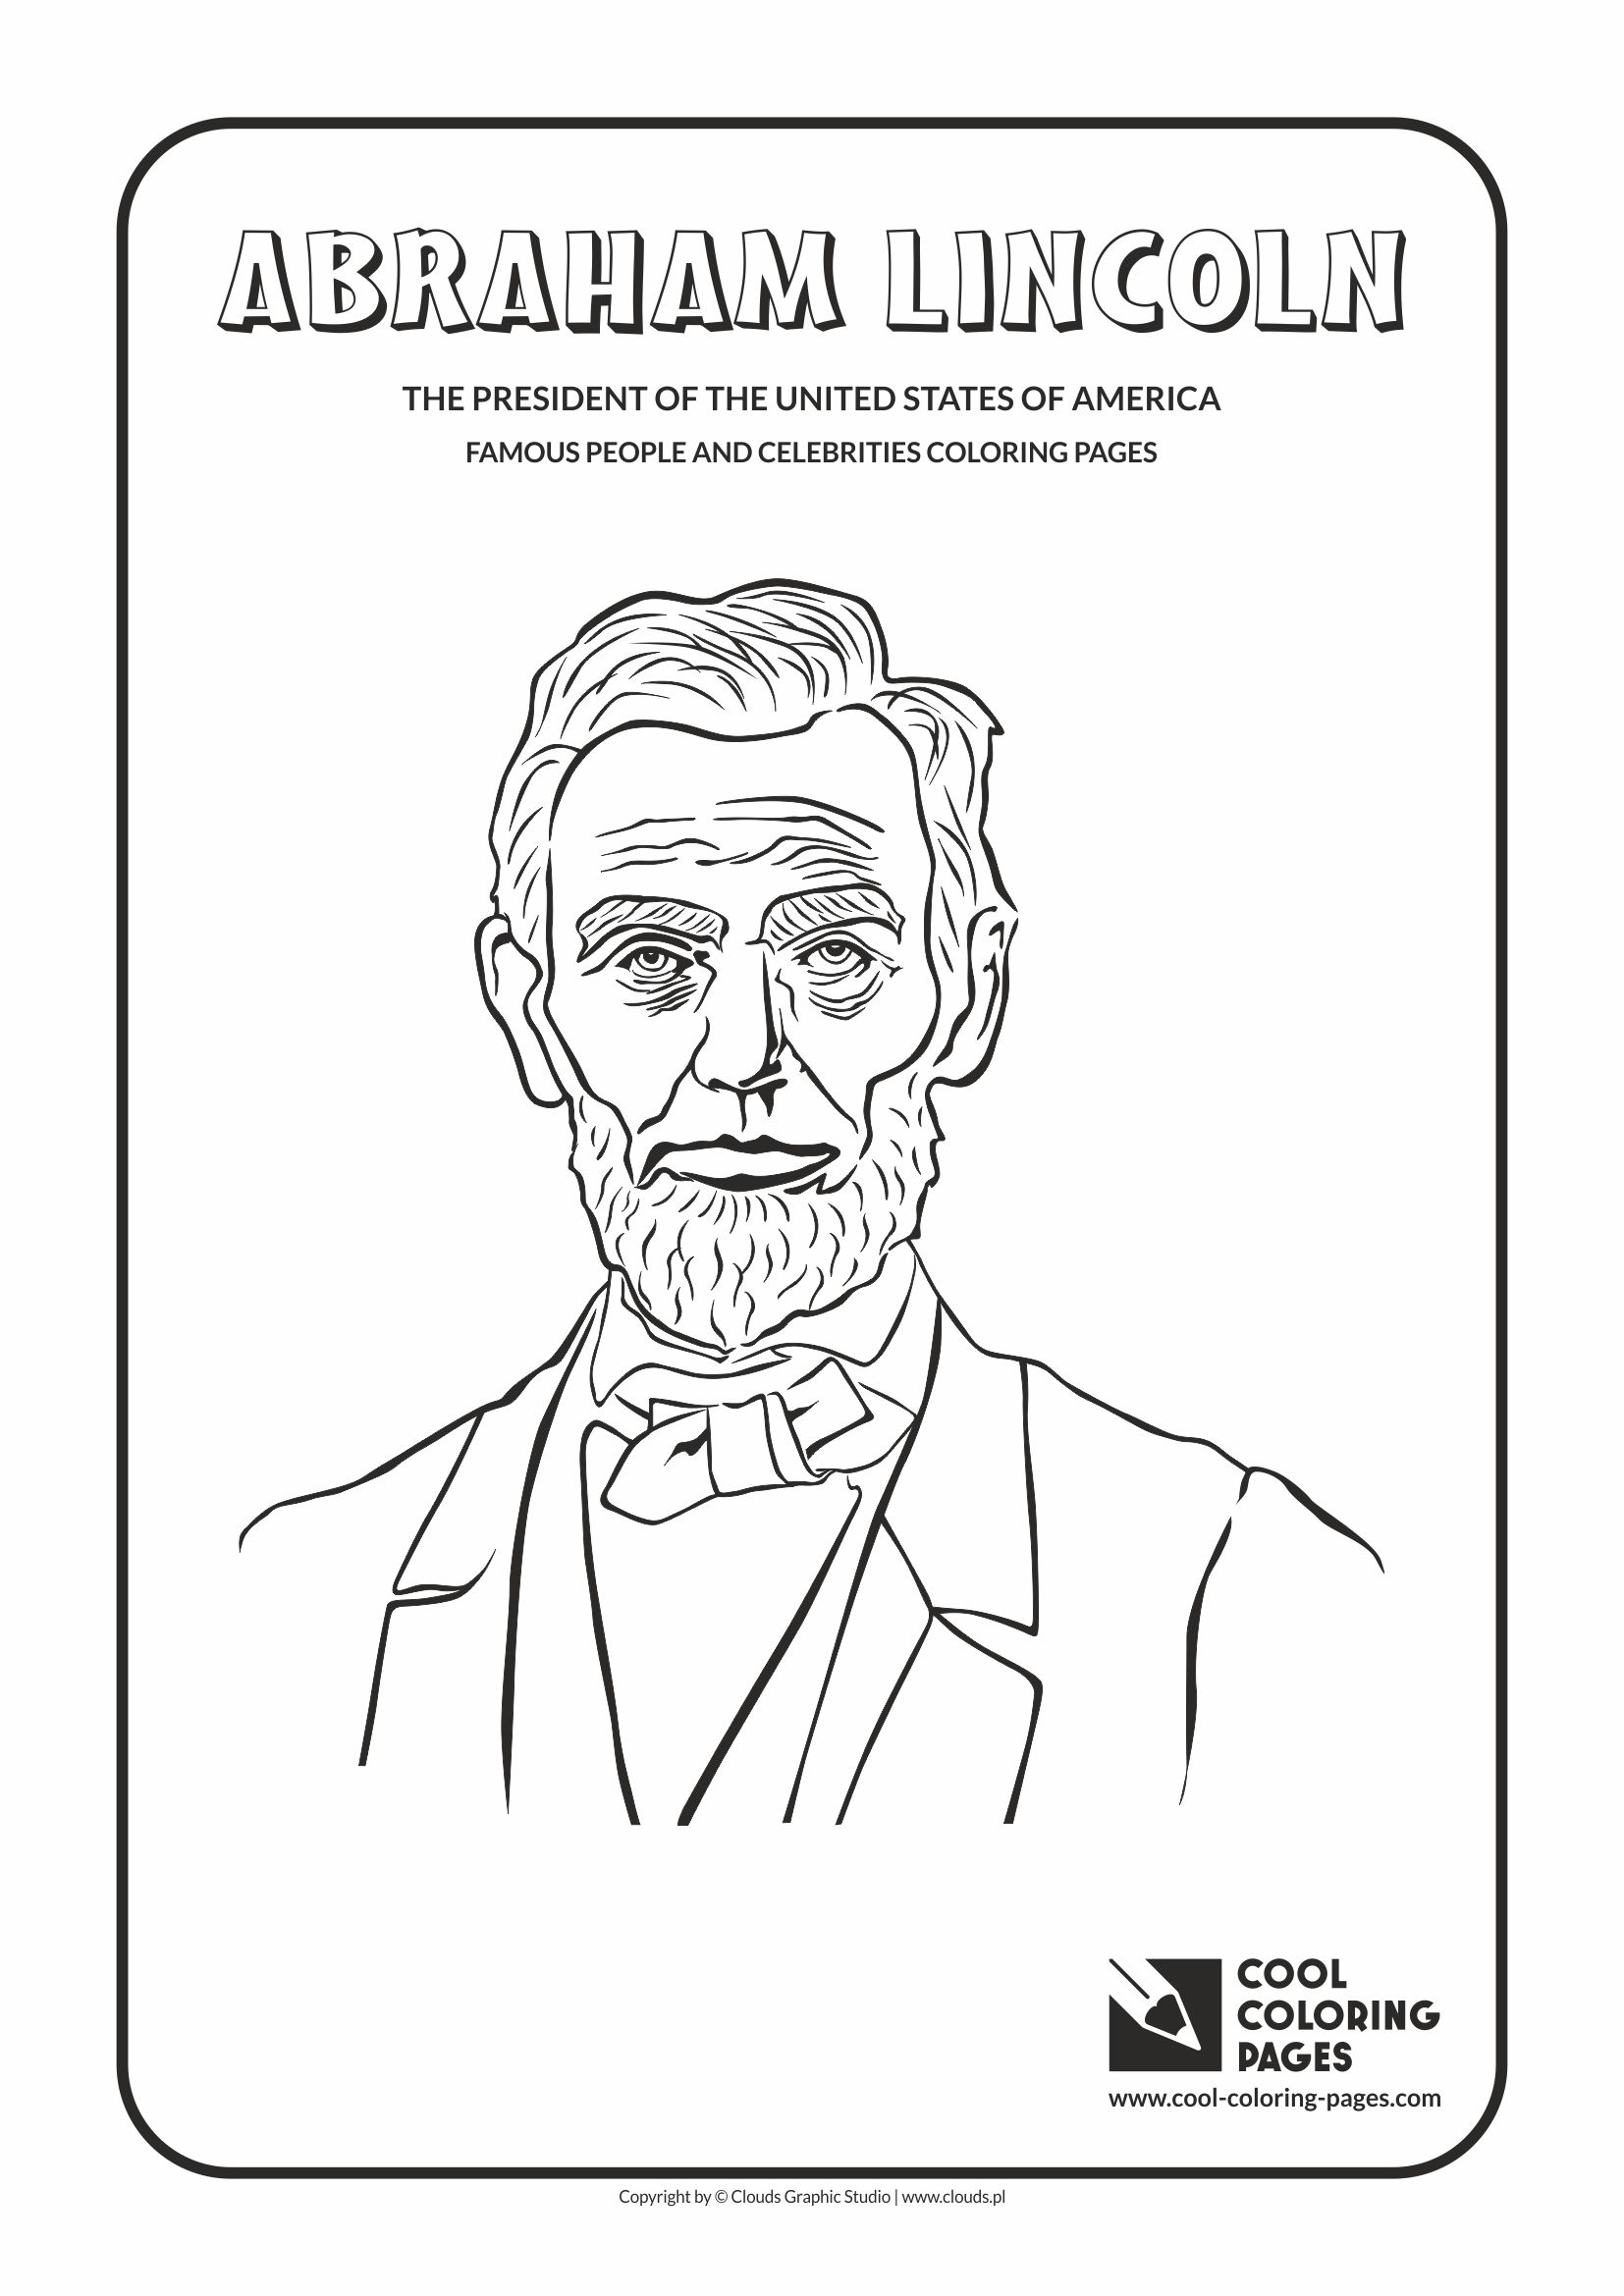 Cool Coloring Pages Abraham Lincoln Coloring Page